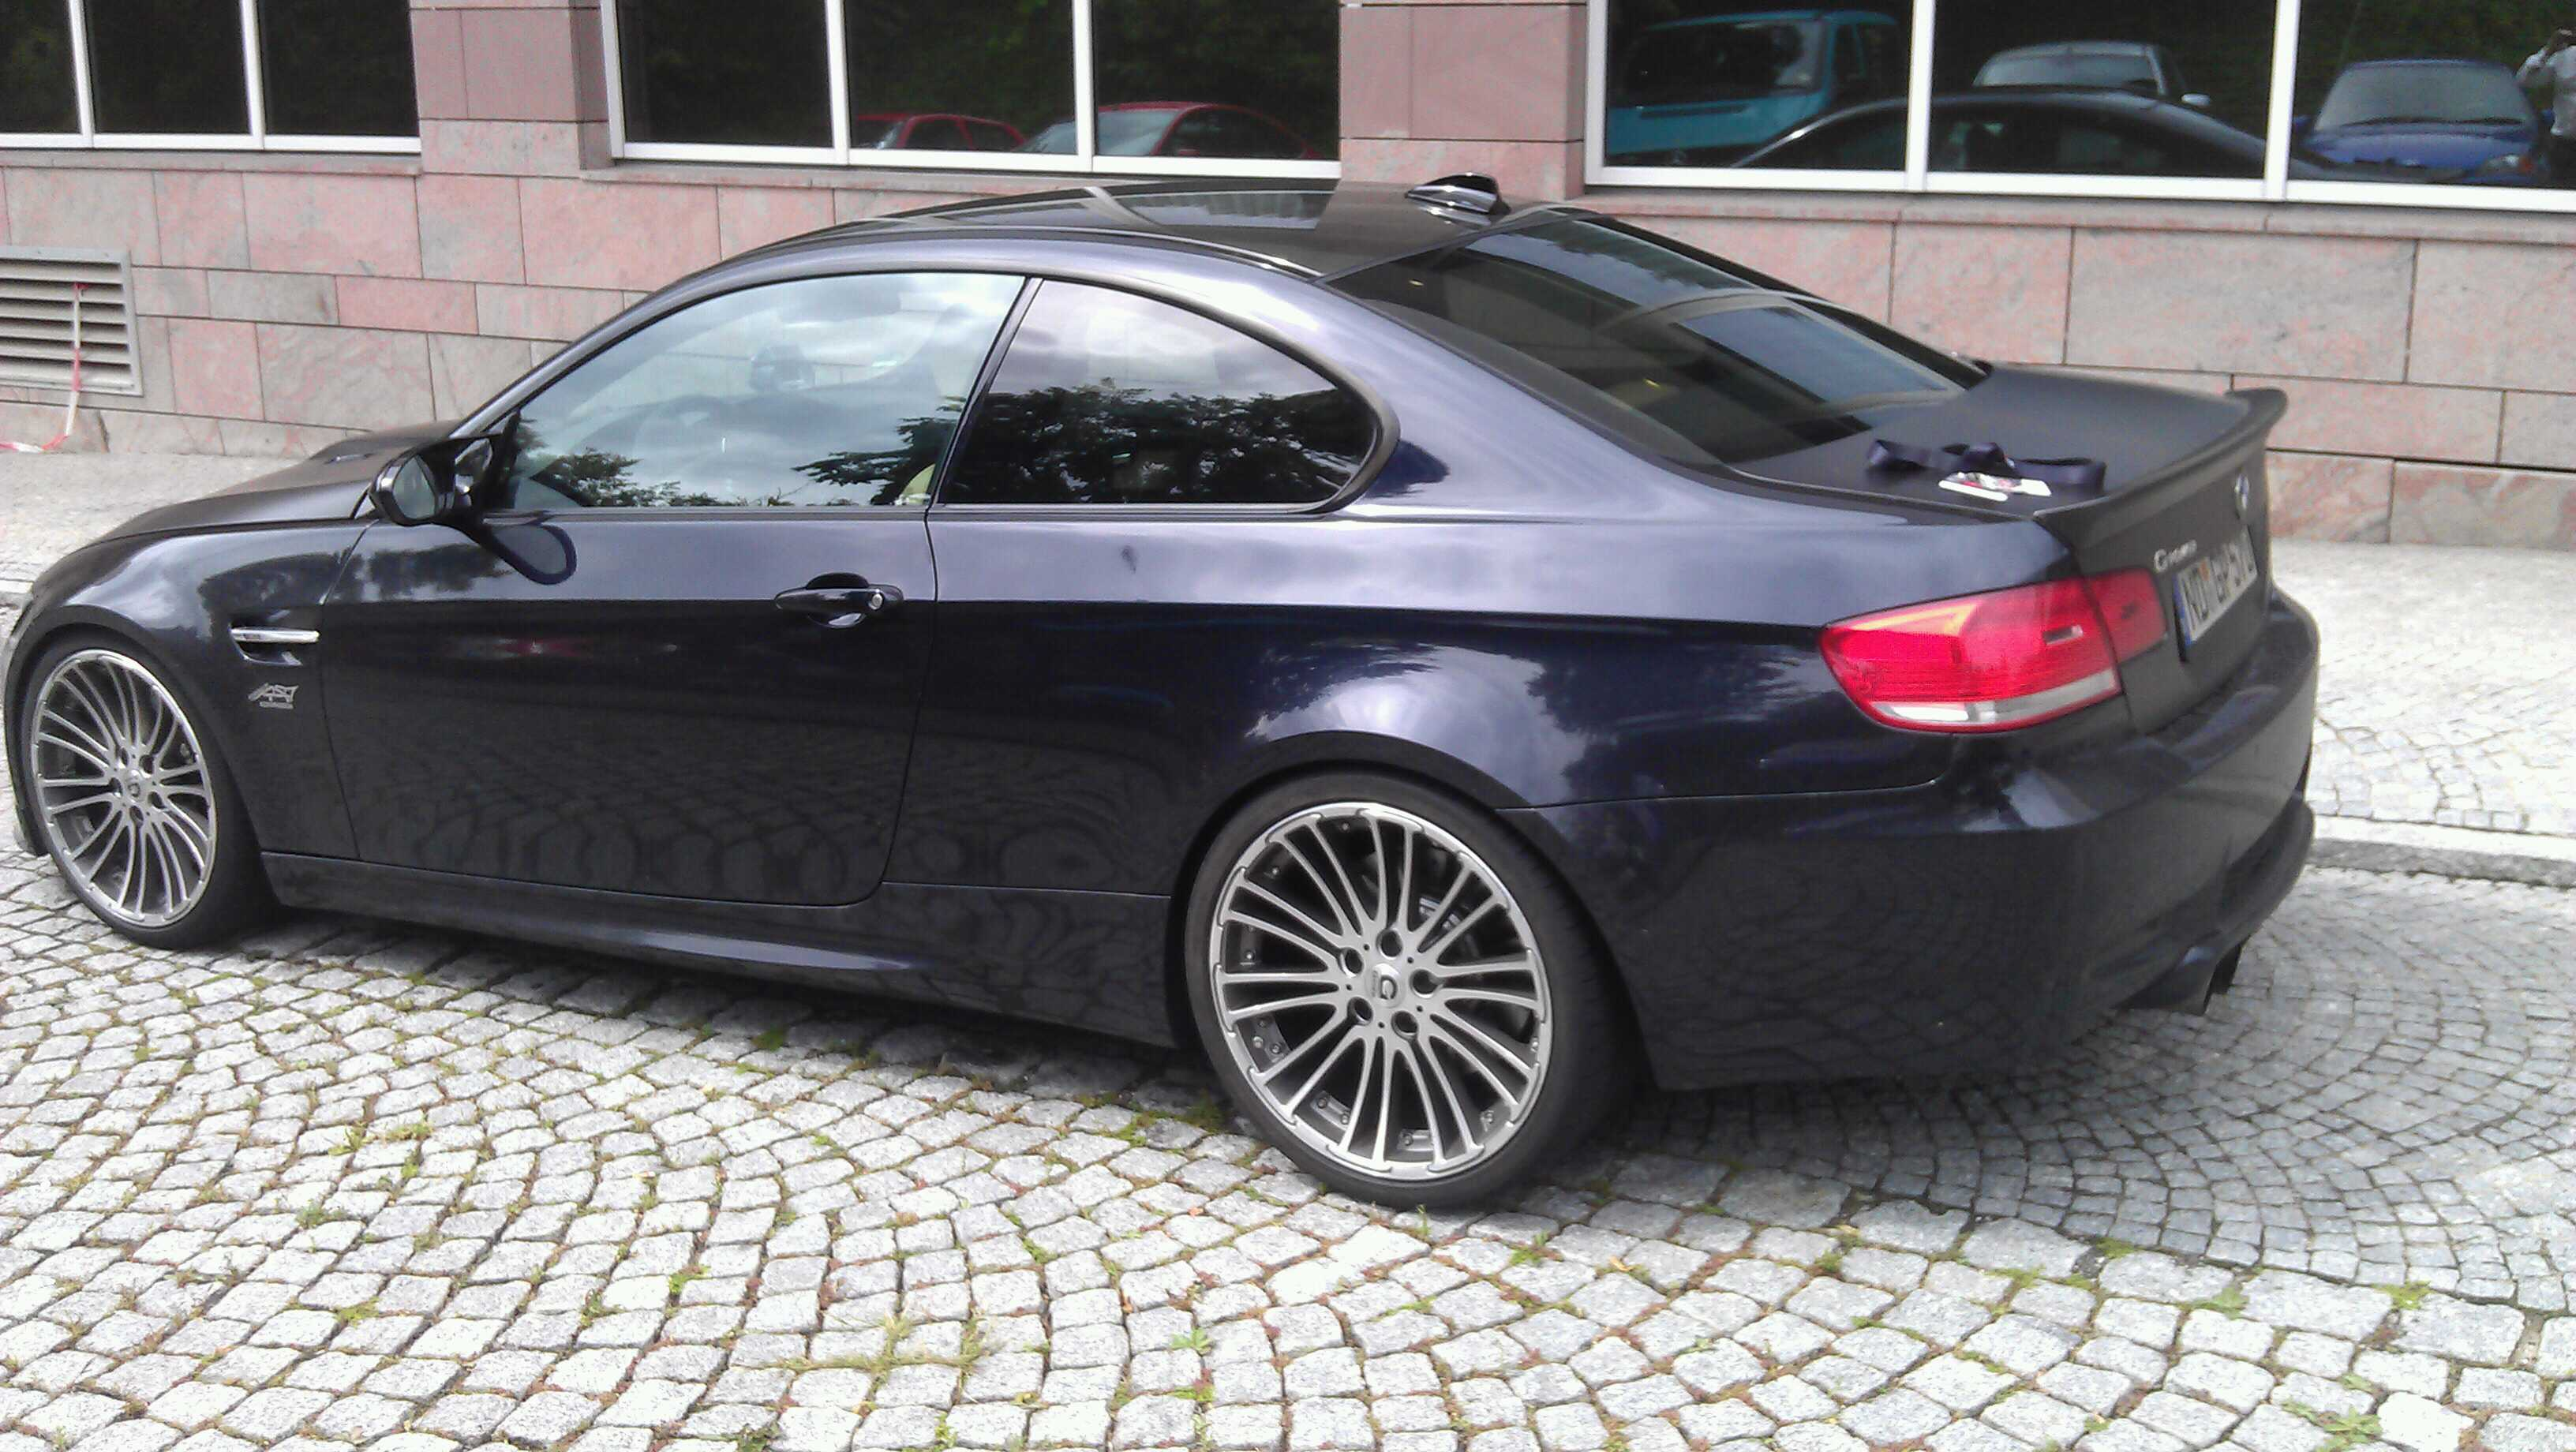 On my way to the BMW M5 F10 presentation at N�rburgring in a G-Power M3 SKII-uploadfromtaptalk1308836027390.jpg